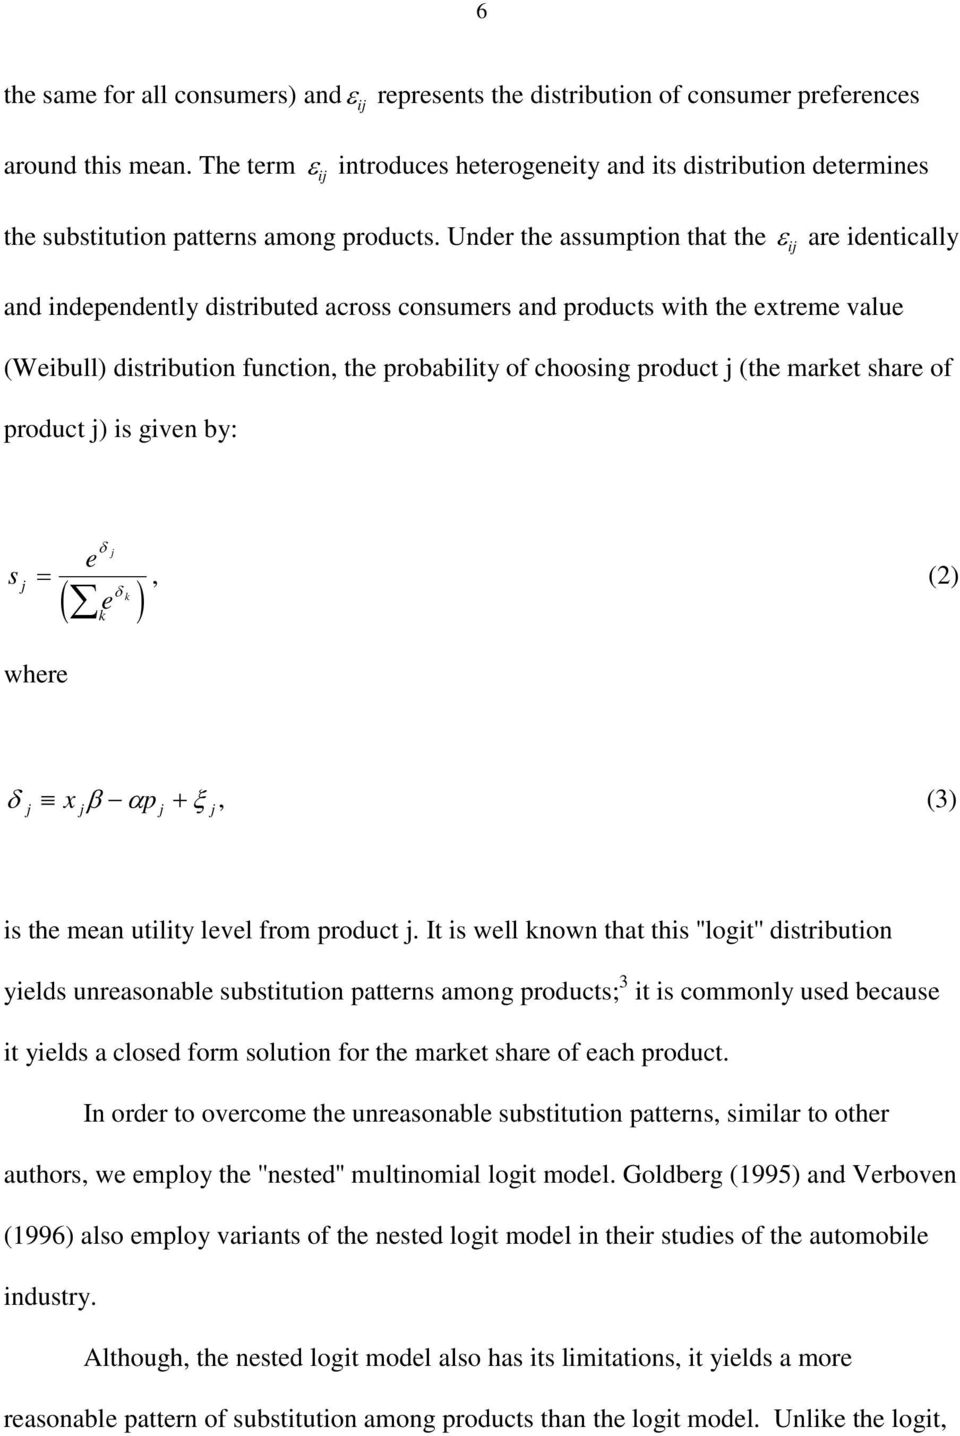 Under the assumption that the ij are identically and independently distributed across consumers and products with the extreme value (Weibull) distribution function, the probability of choosing